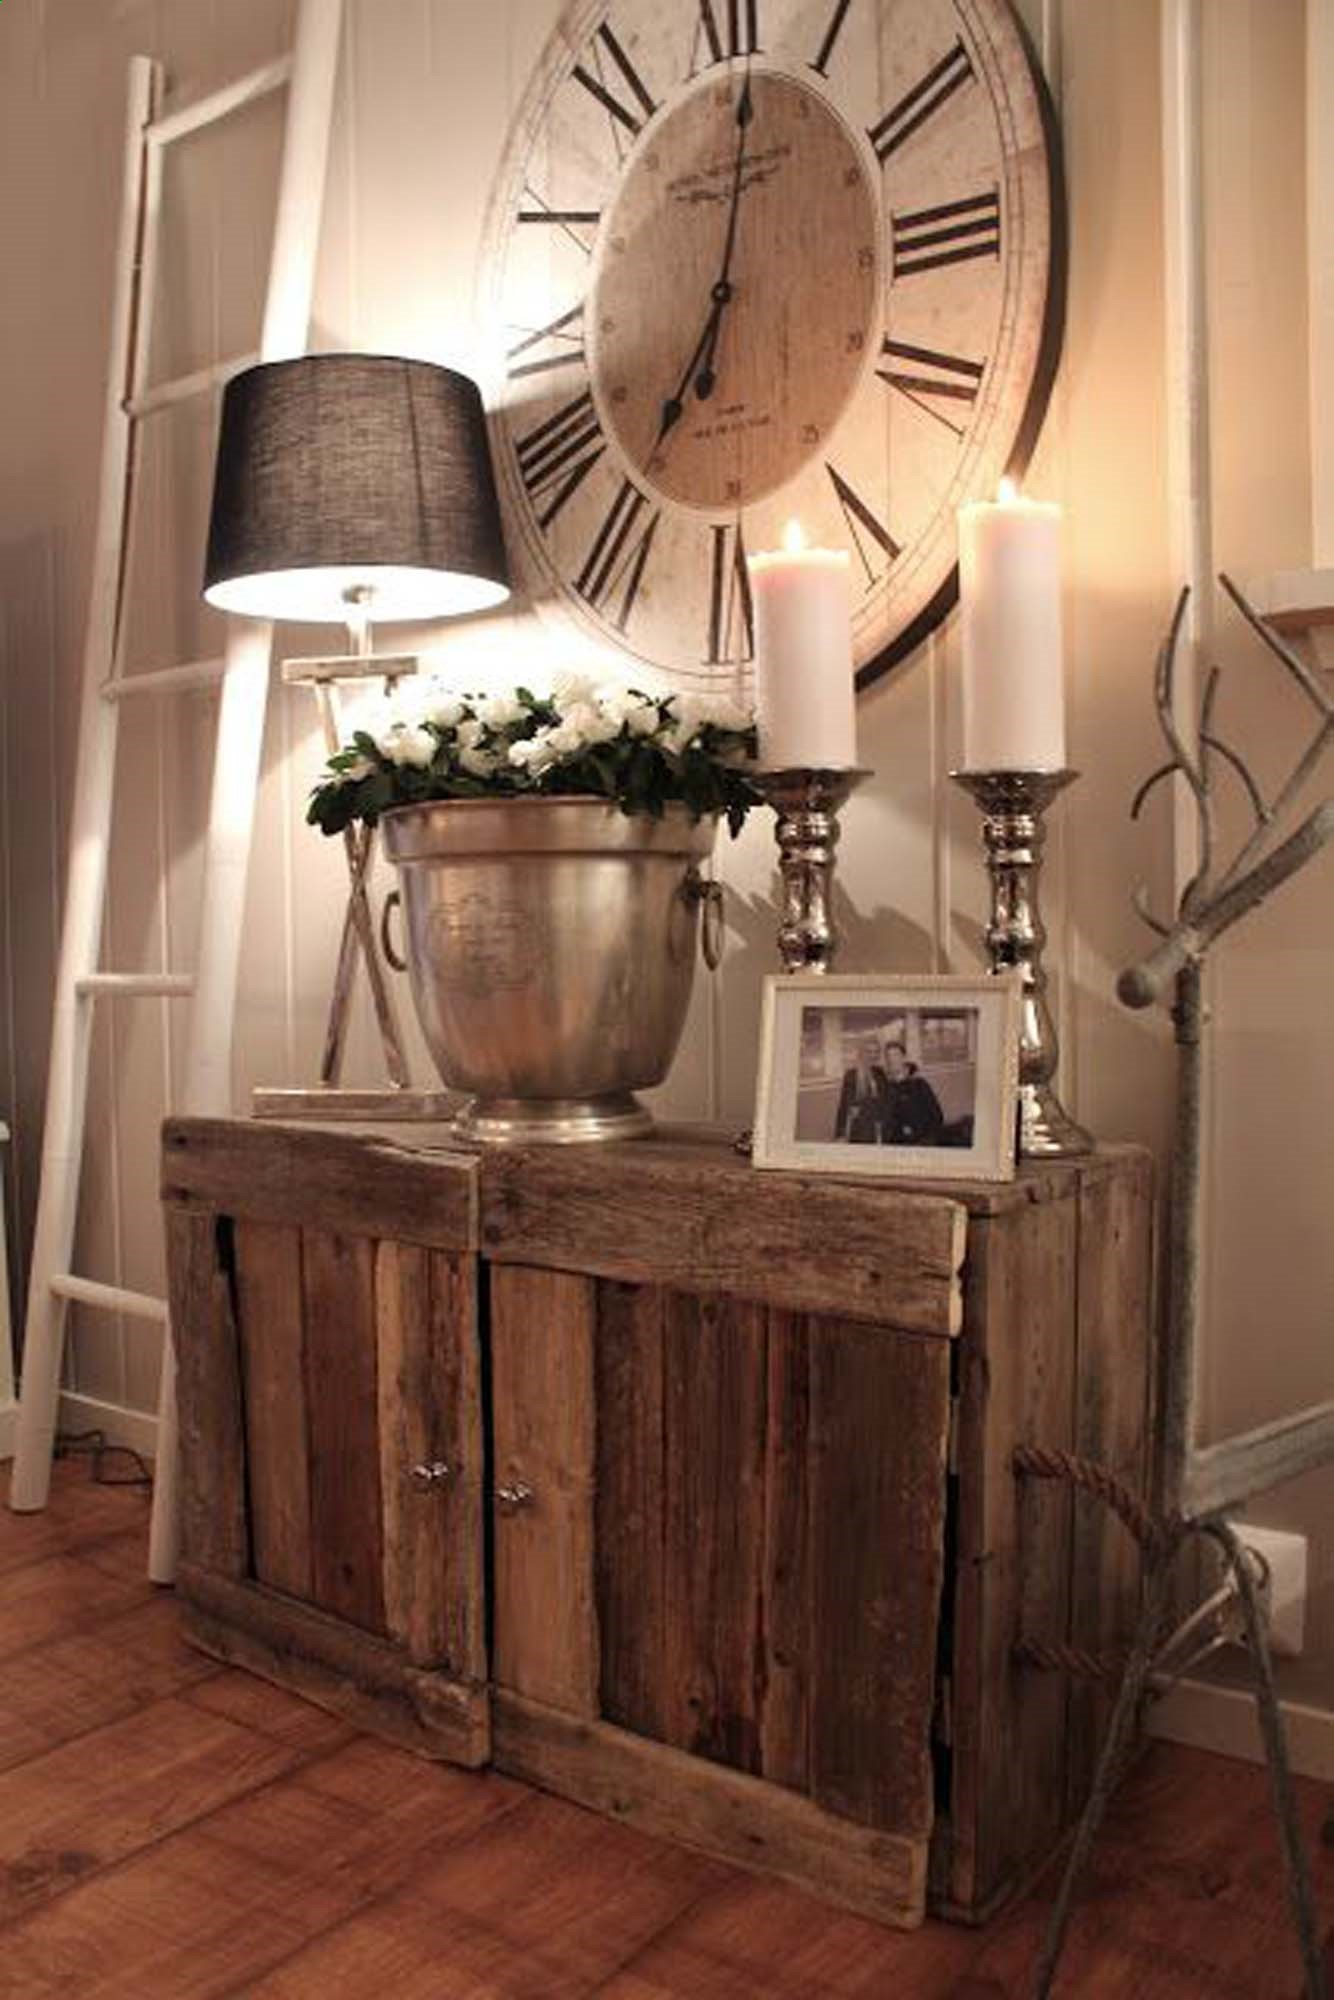 This is fabulous! The rustic cabinet and the HUGE clock, love it! Ive been eyeing